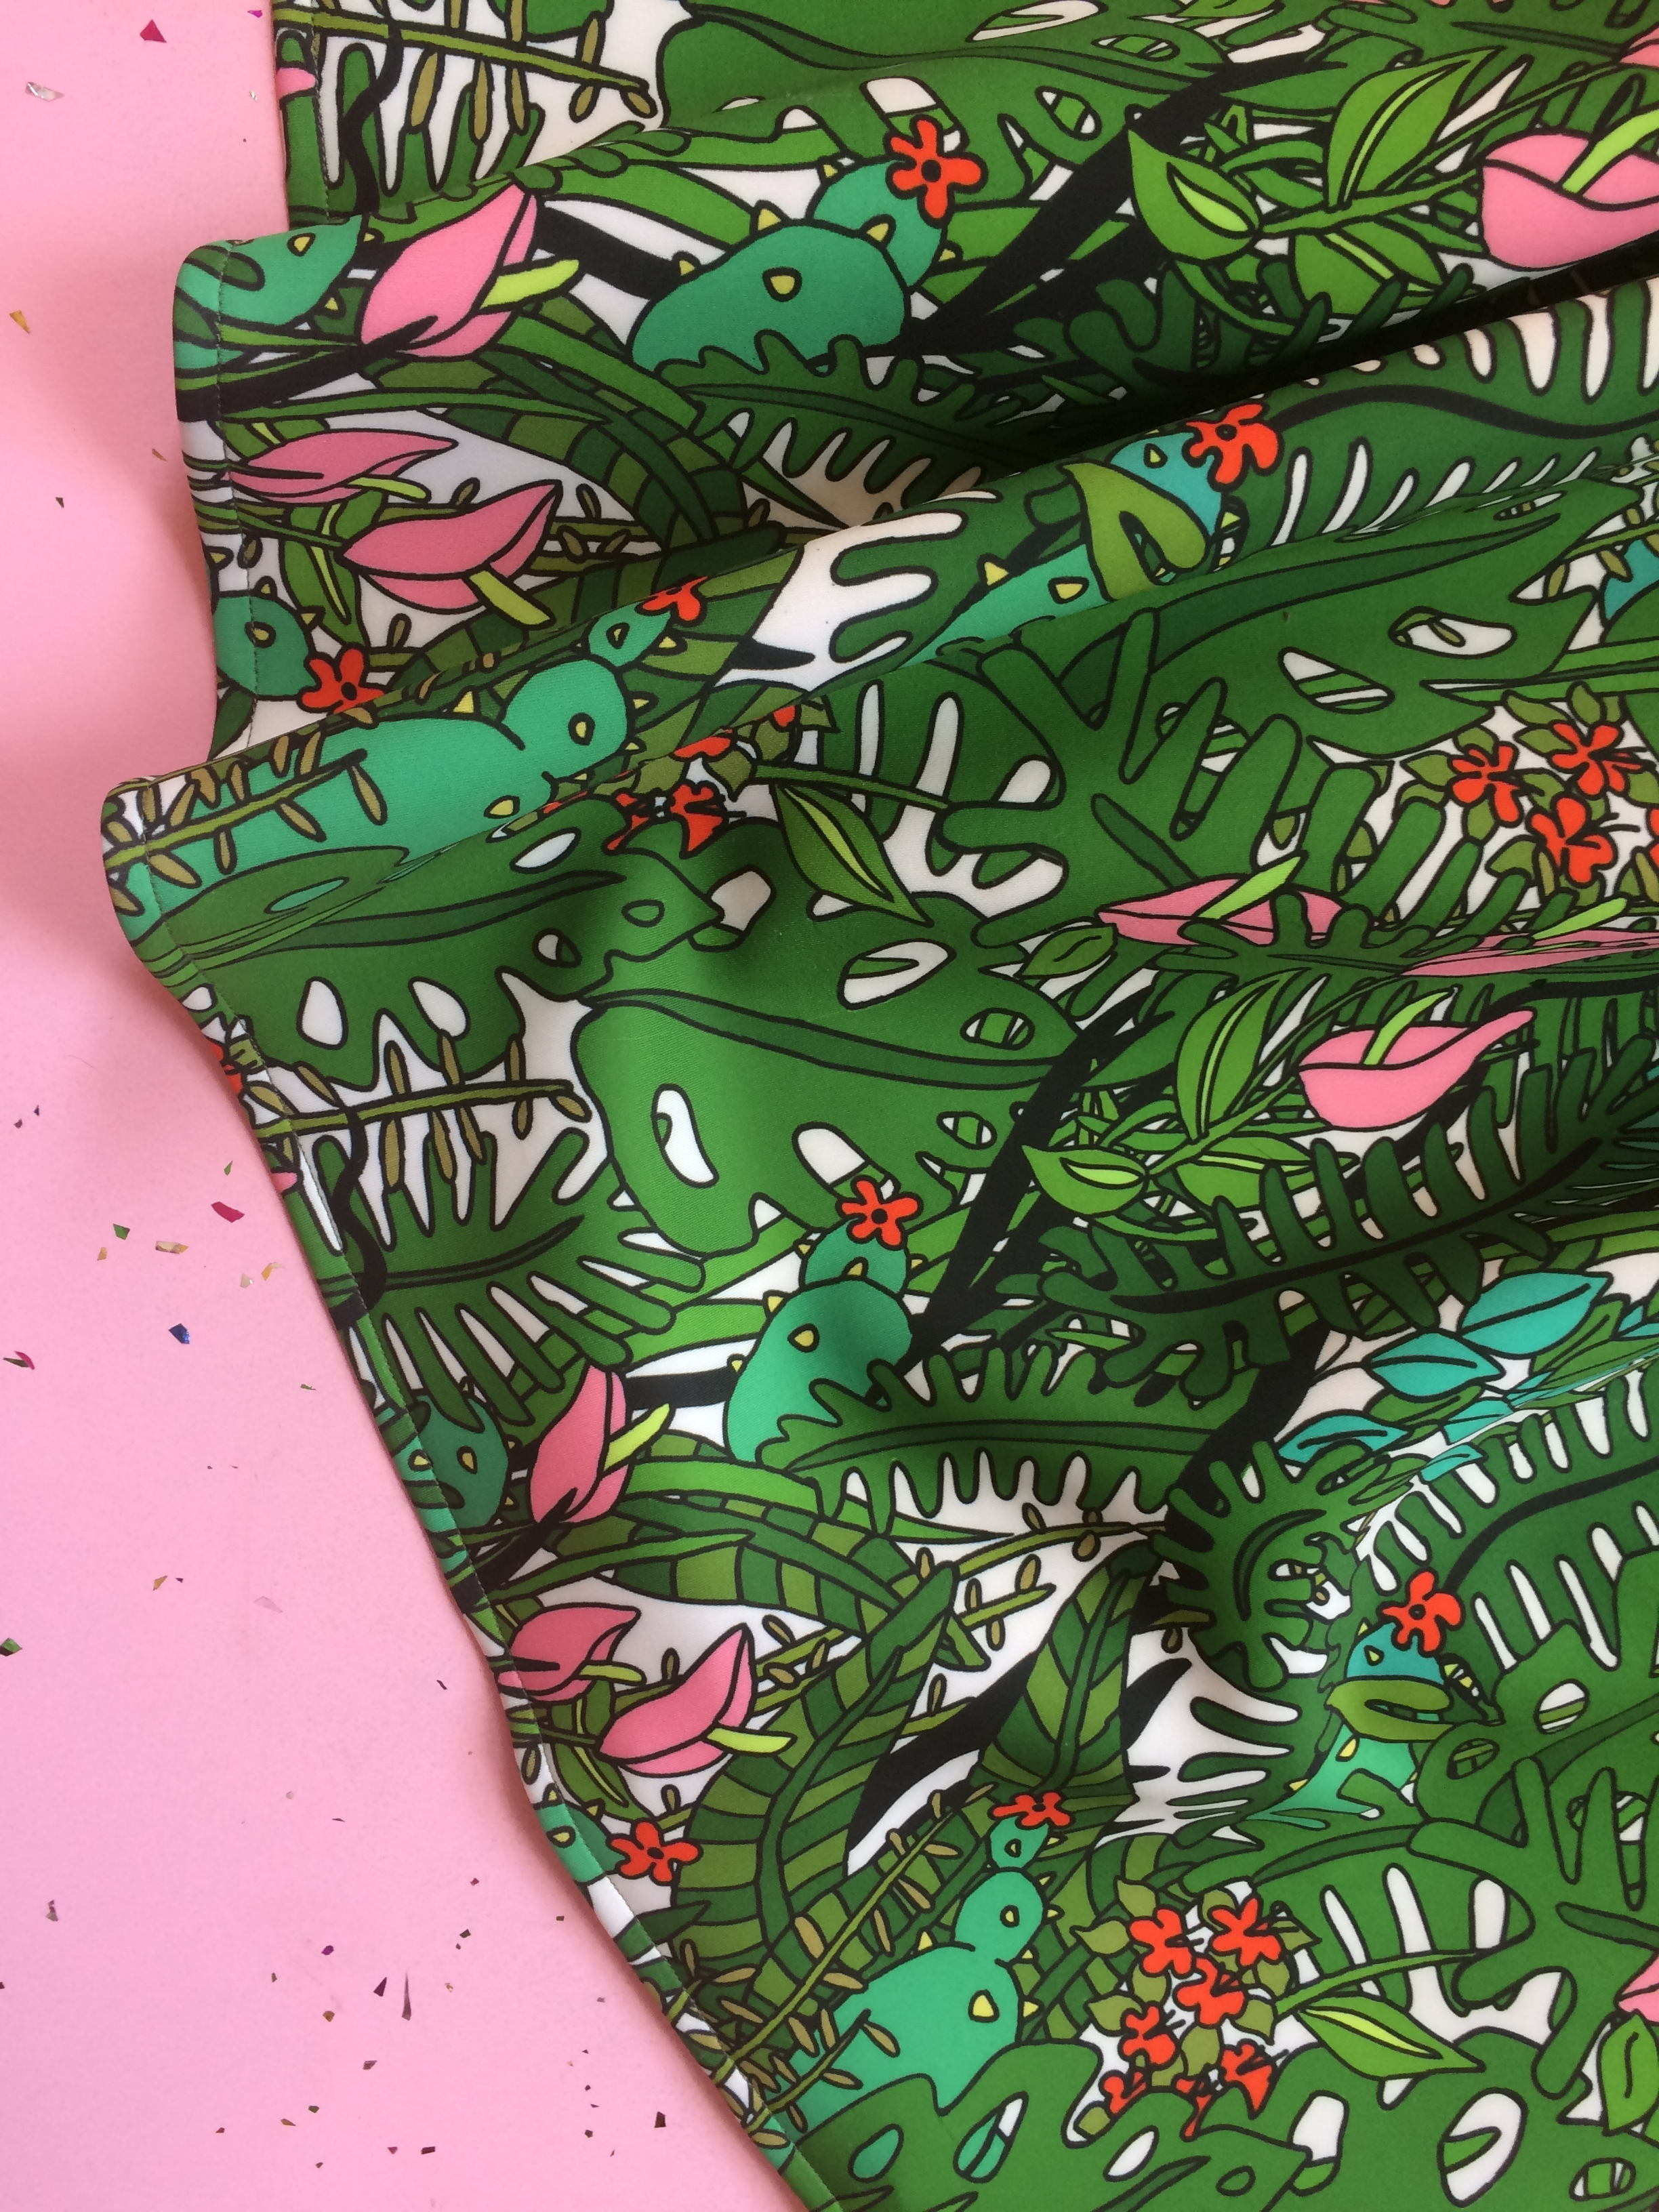 2017 Tropical Textile Design on Neoprene